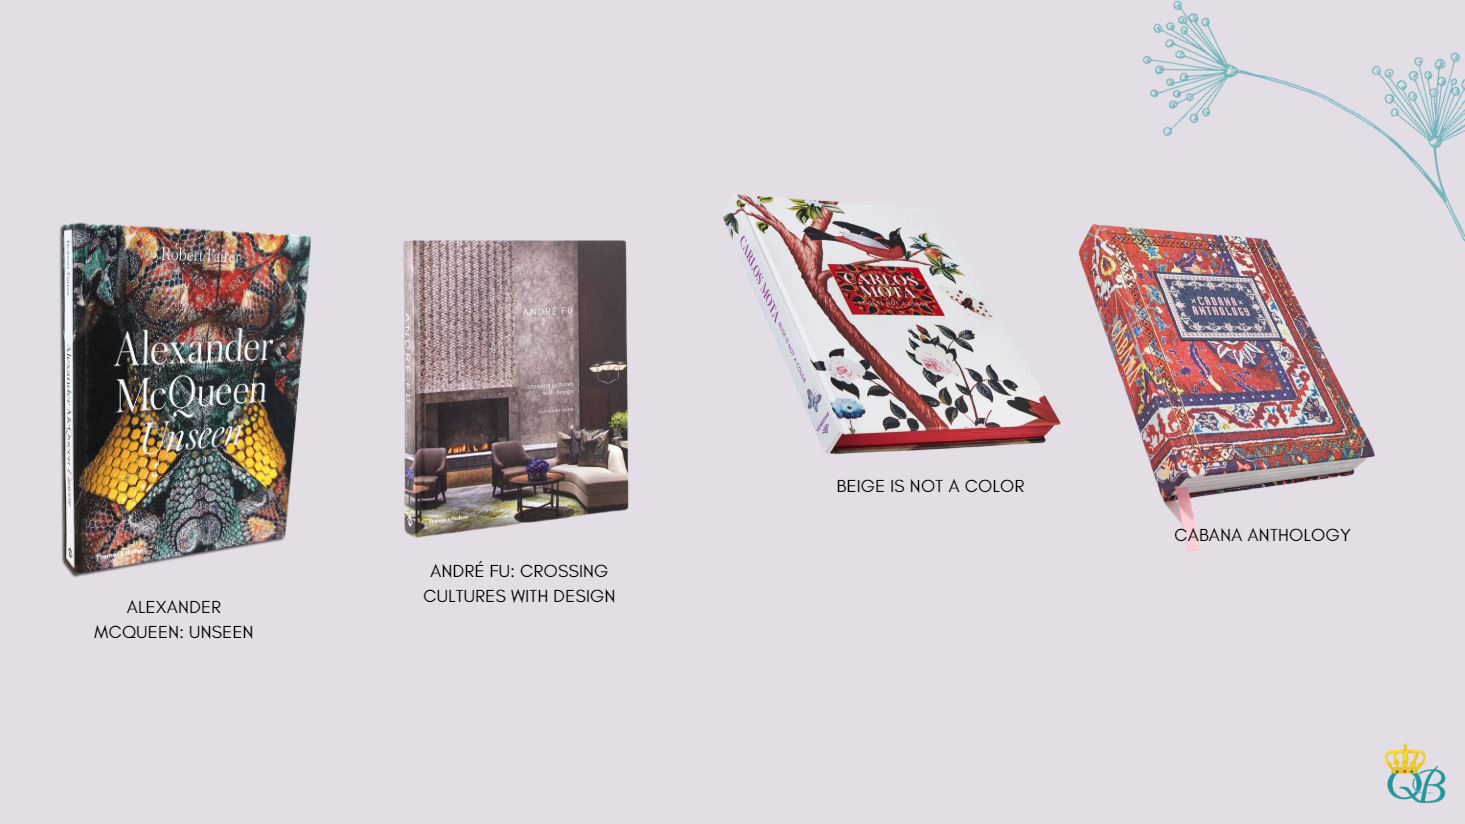 Livros: Alexander McQueen: Unseen, André Fu: Crossing Cultures With Design, Beige is Not a Color, Cabana Anthology.